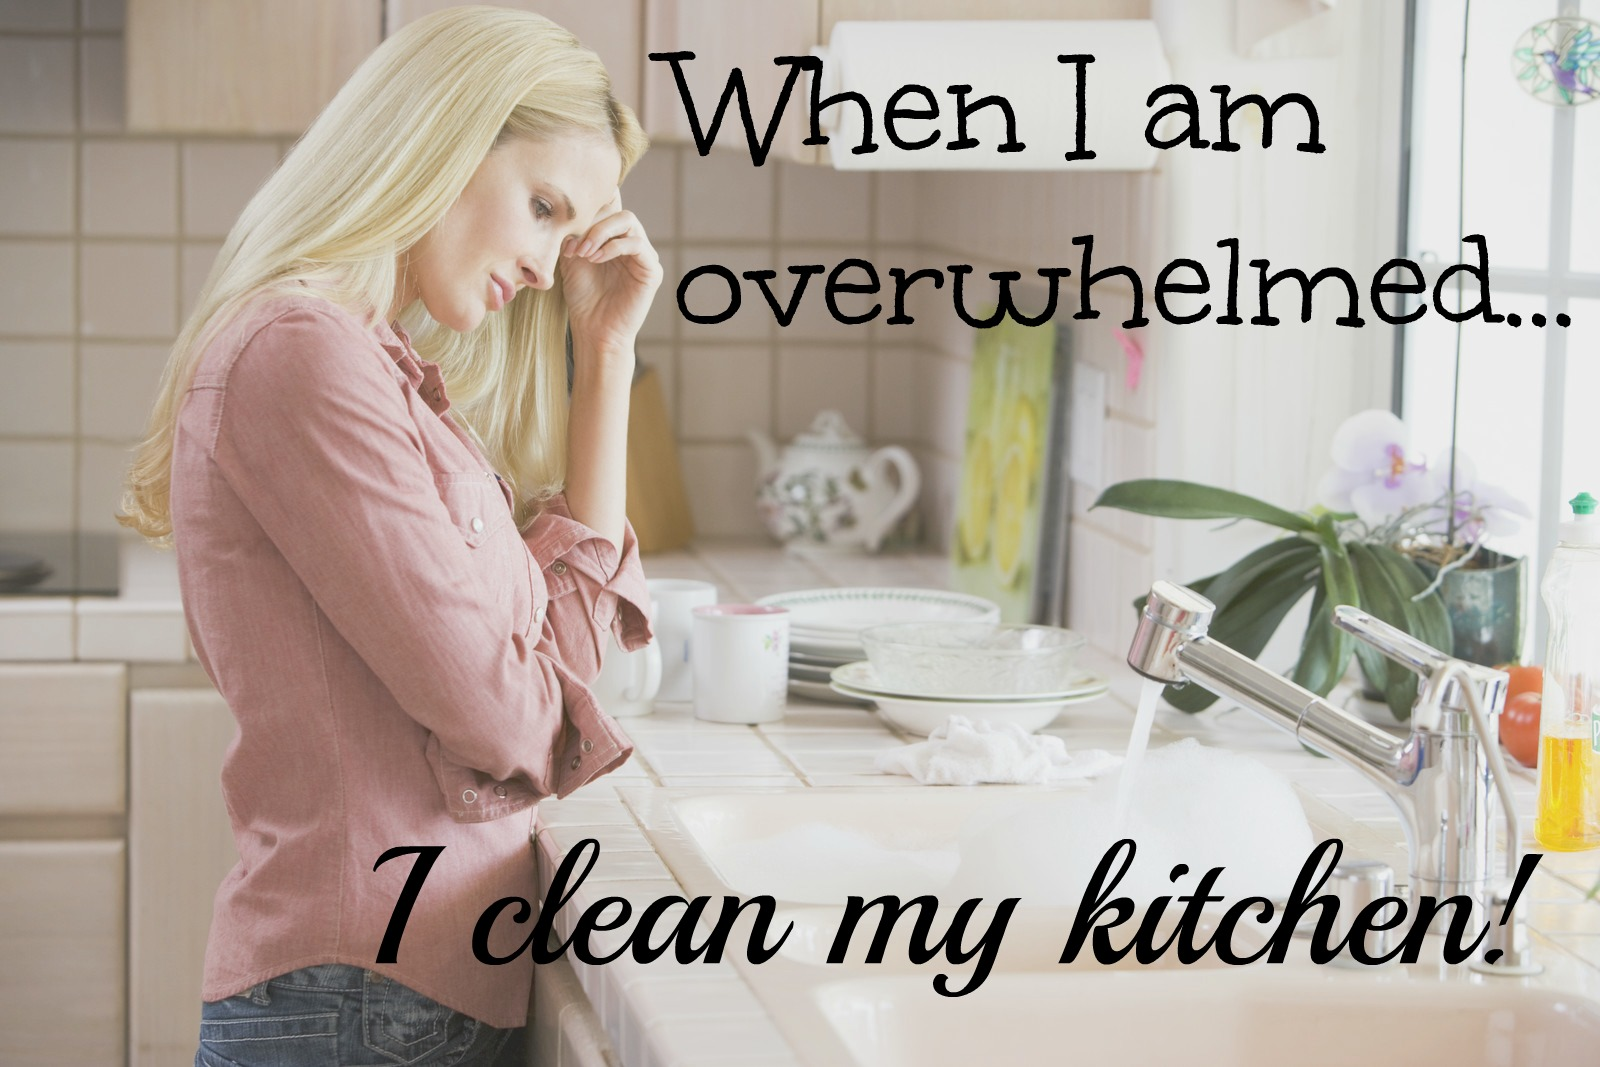 When I am overwhelmed, I clean my kitchen!